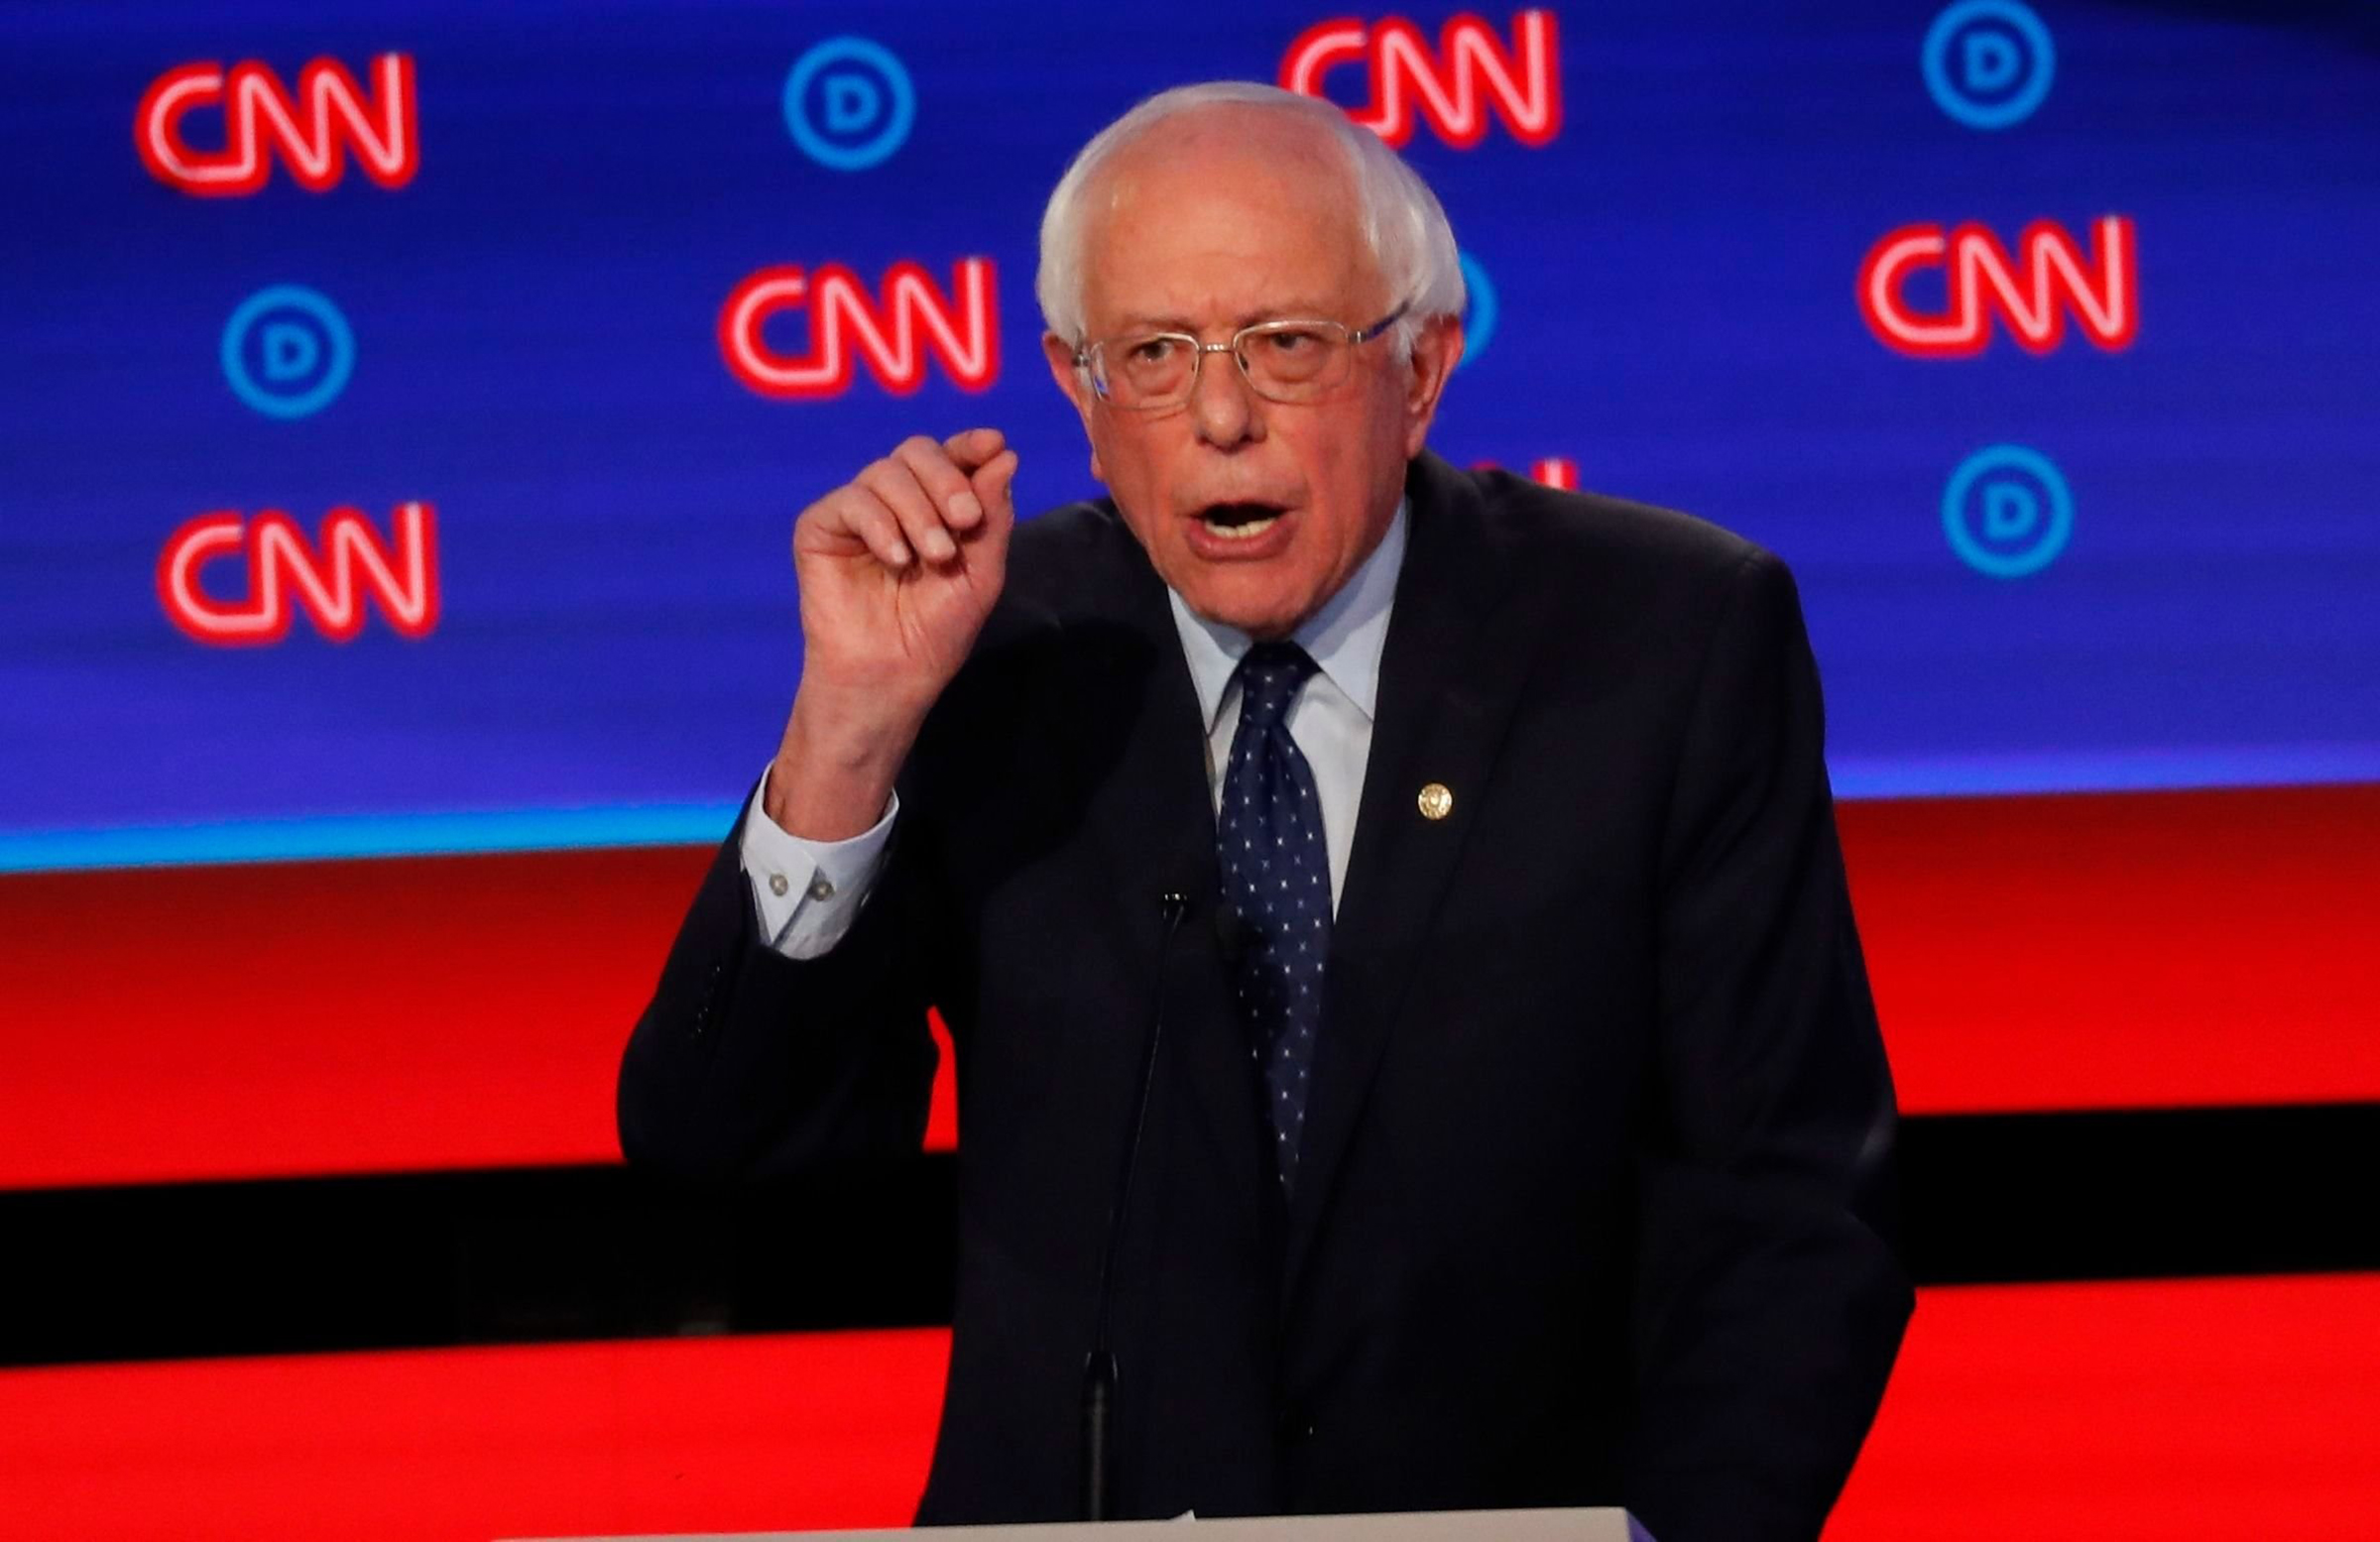 Sen. Bernie Sanders, I-Vt., speaks during the first of two Democratic presidential primary debates hosted by CNN, at the Fox Theatre in Detroit on July 30, 2019.